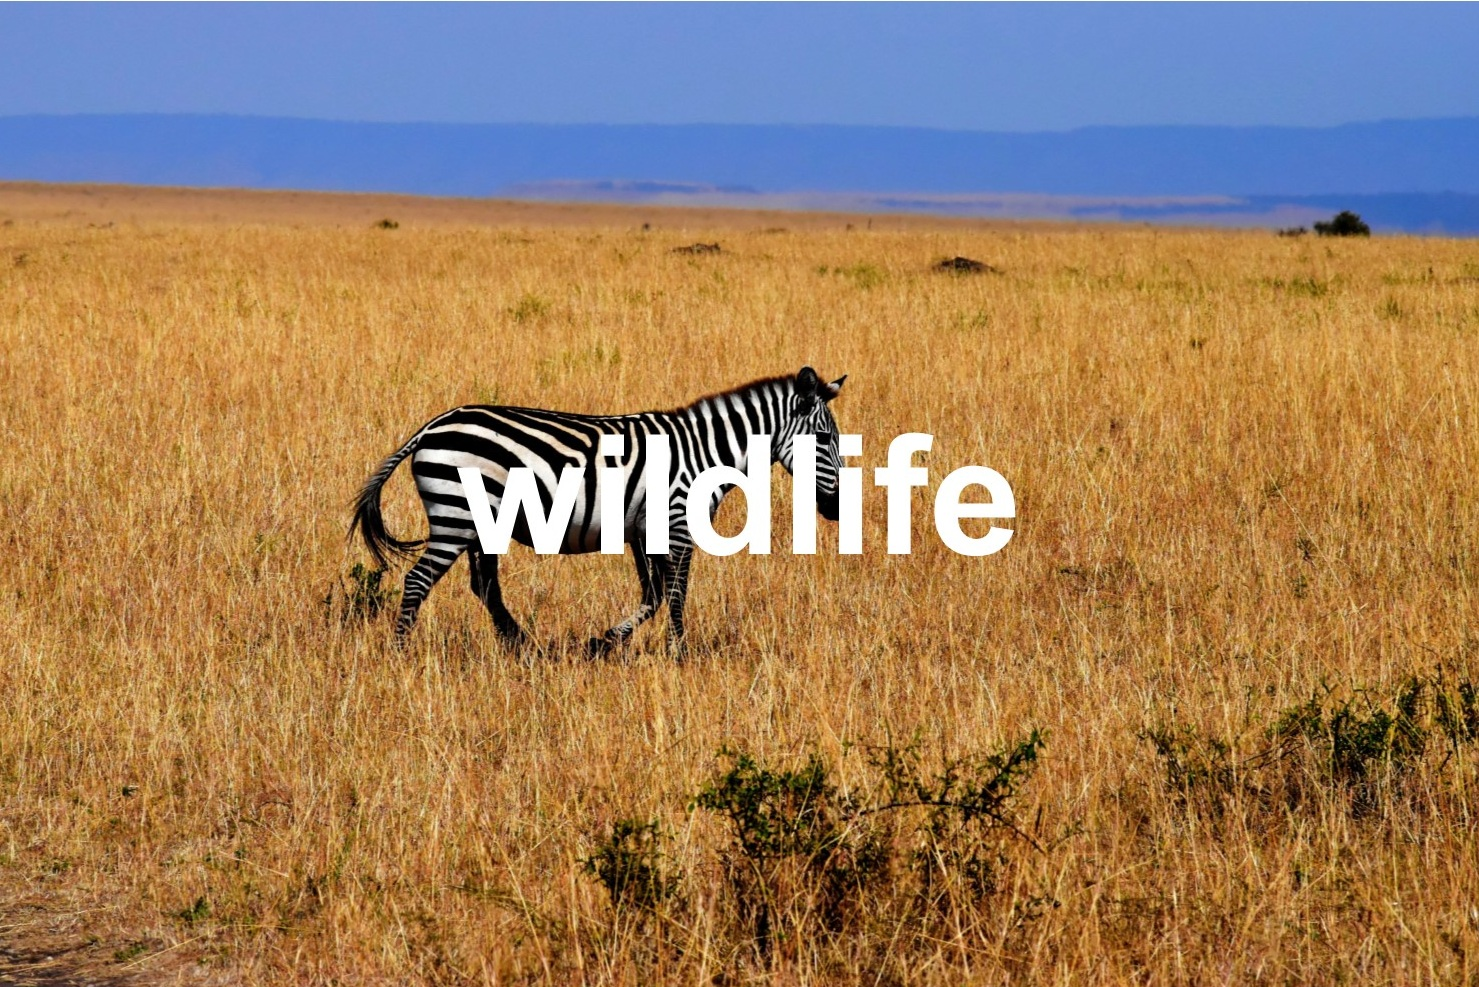 Wildlife with Text.jpg